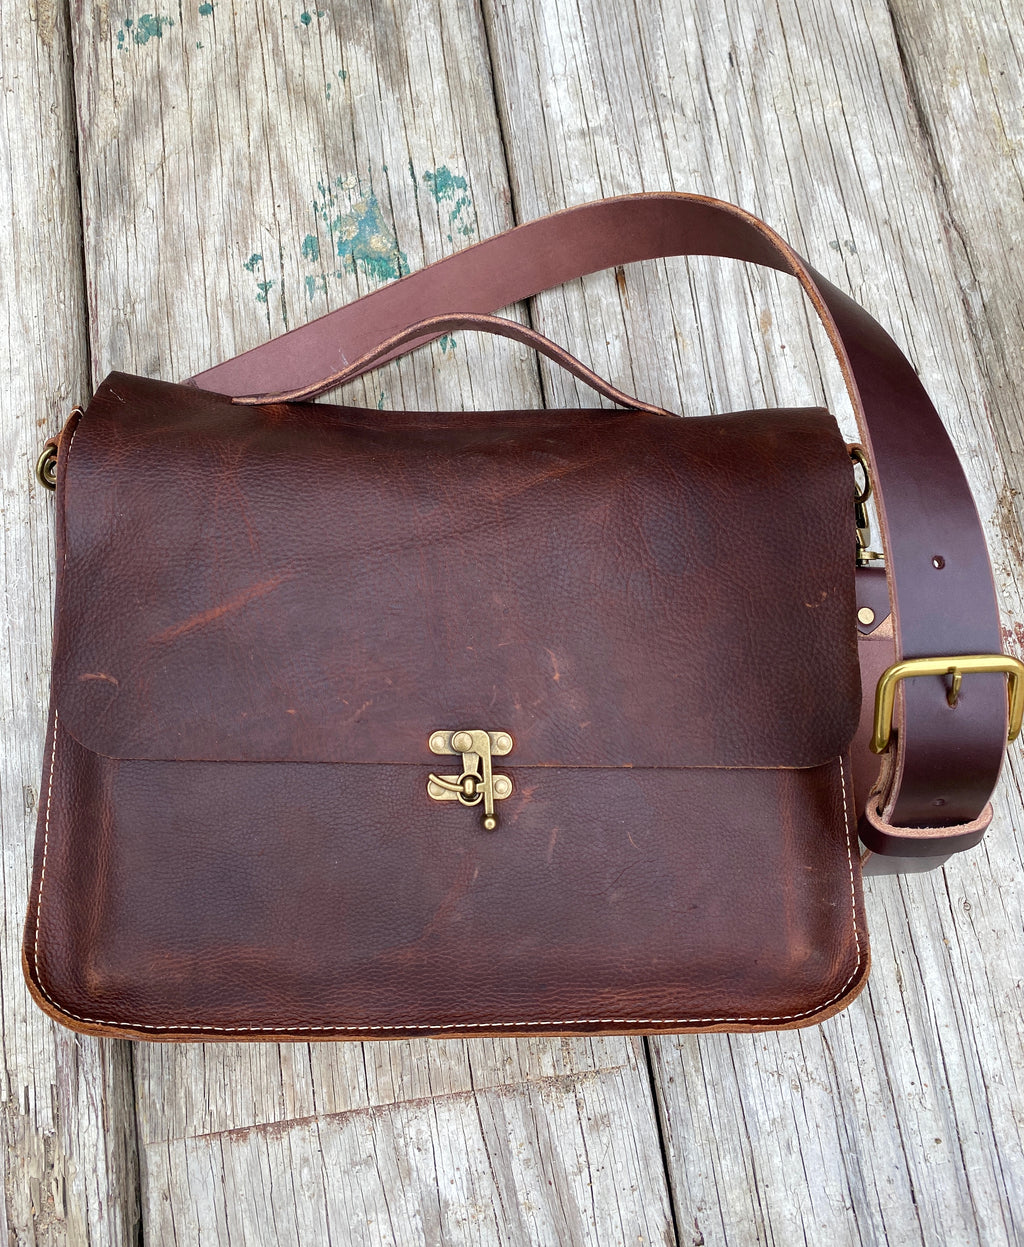 Handmade Leather Bags, Messenger Bag